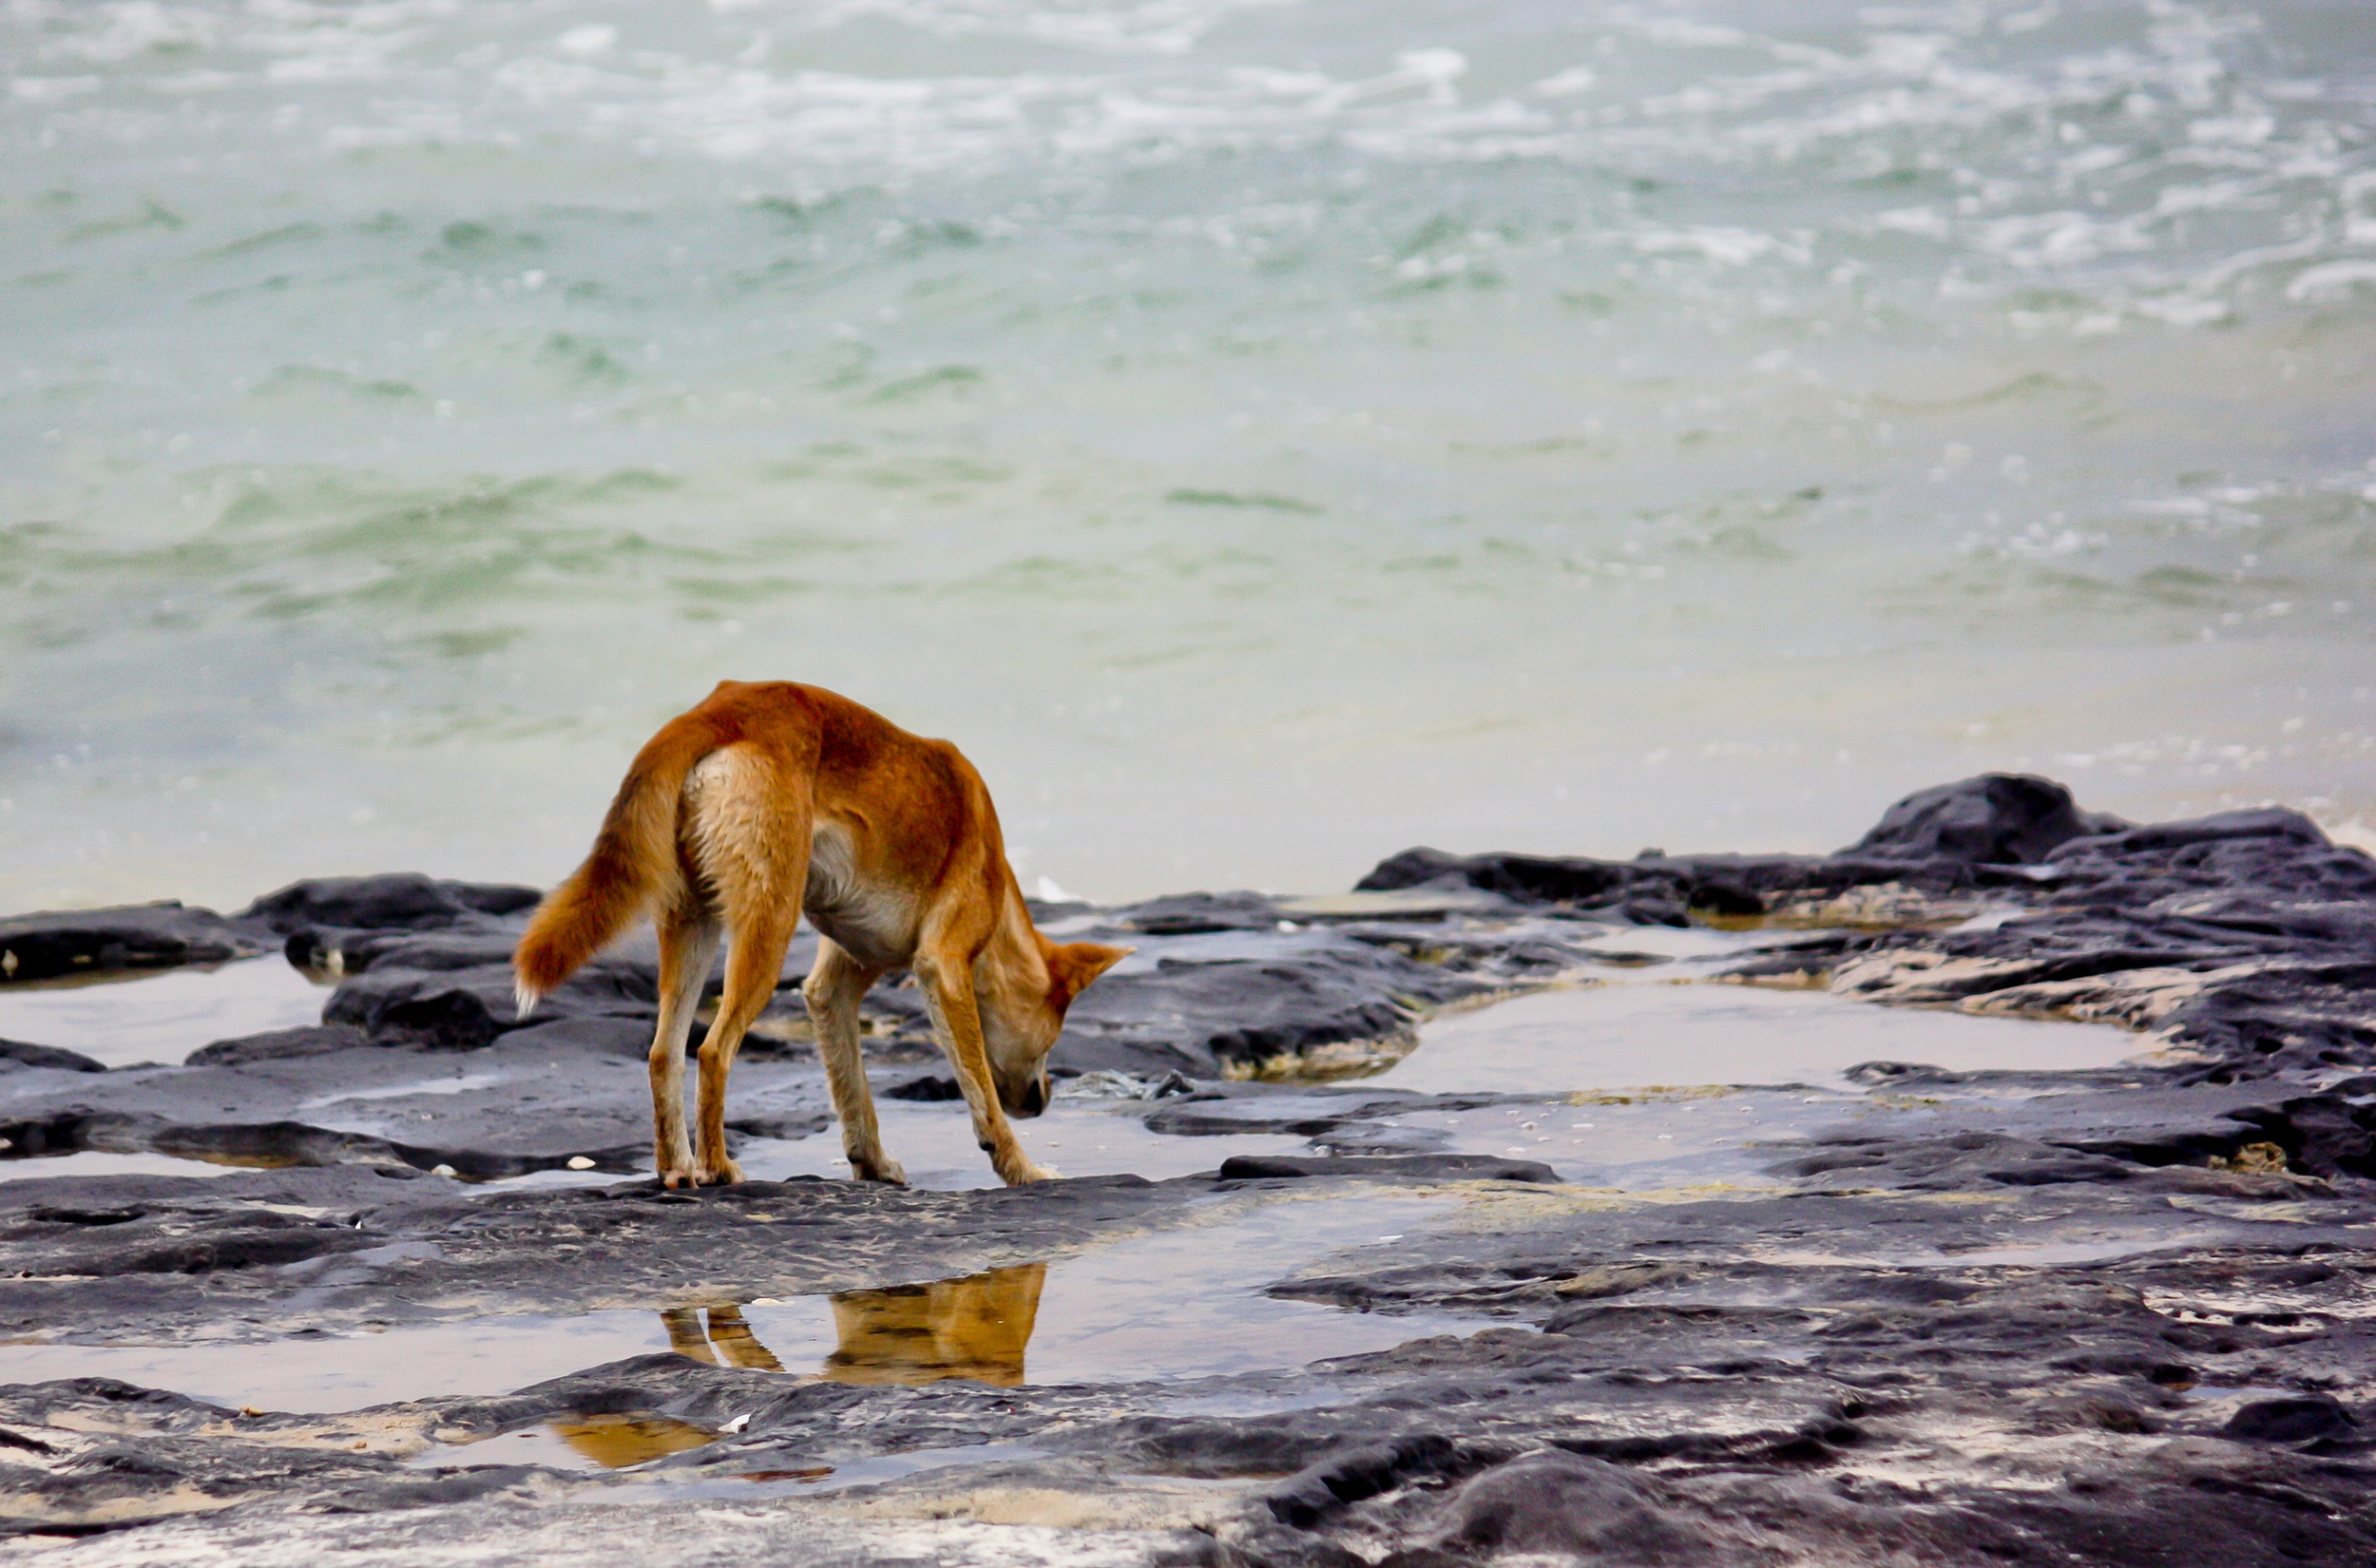 FPM Dingo helps you examine the challenge  (Image: (c) Squirel77 | Dreamstime.com)